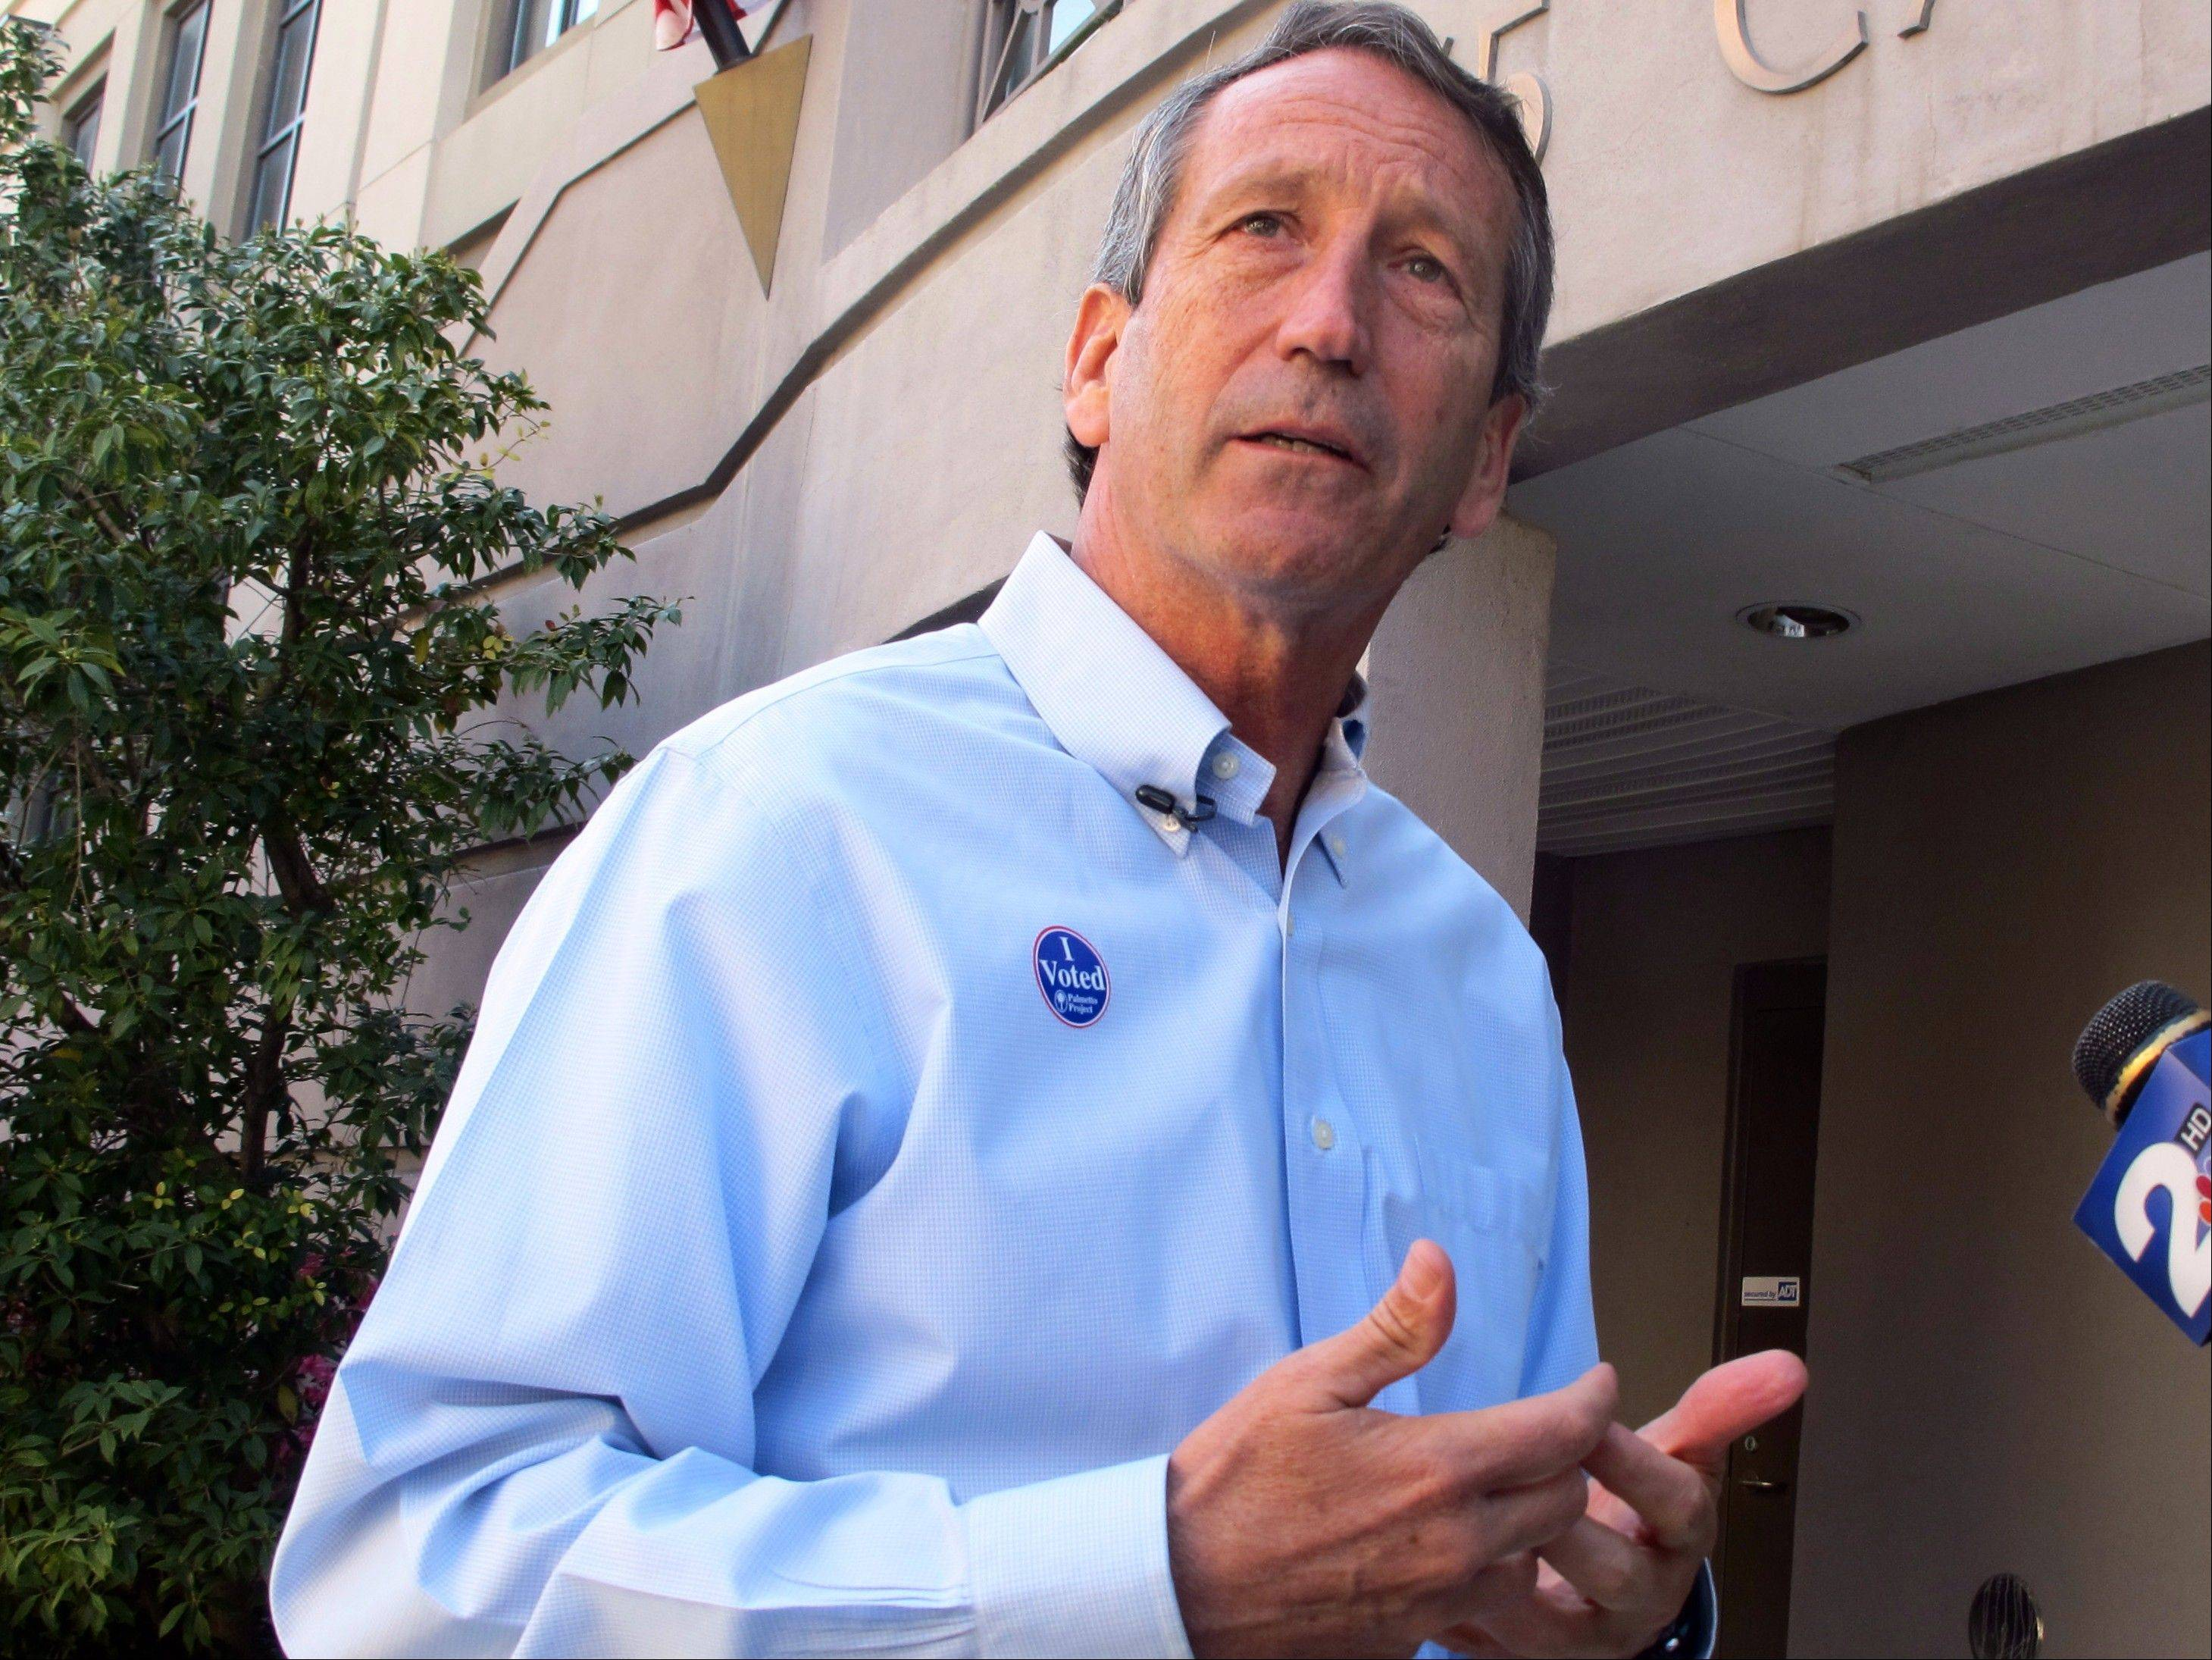 Former South Carolina Gov. Mark Sanford, a Republican trying to make a comeback after his political career was derailed by his admission of an extramarital affair, will face Democrat Elizabeth Colbert Busch, the sister of political satirist Stephen Colbert, in a May 7 special election.